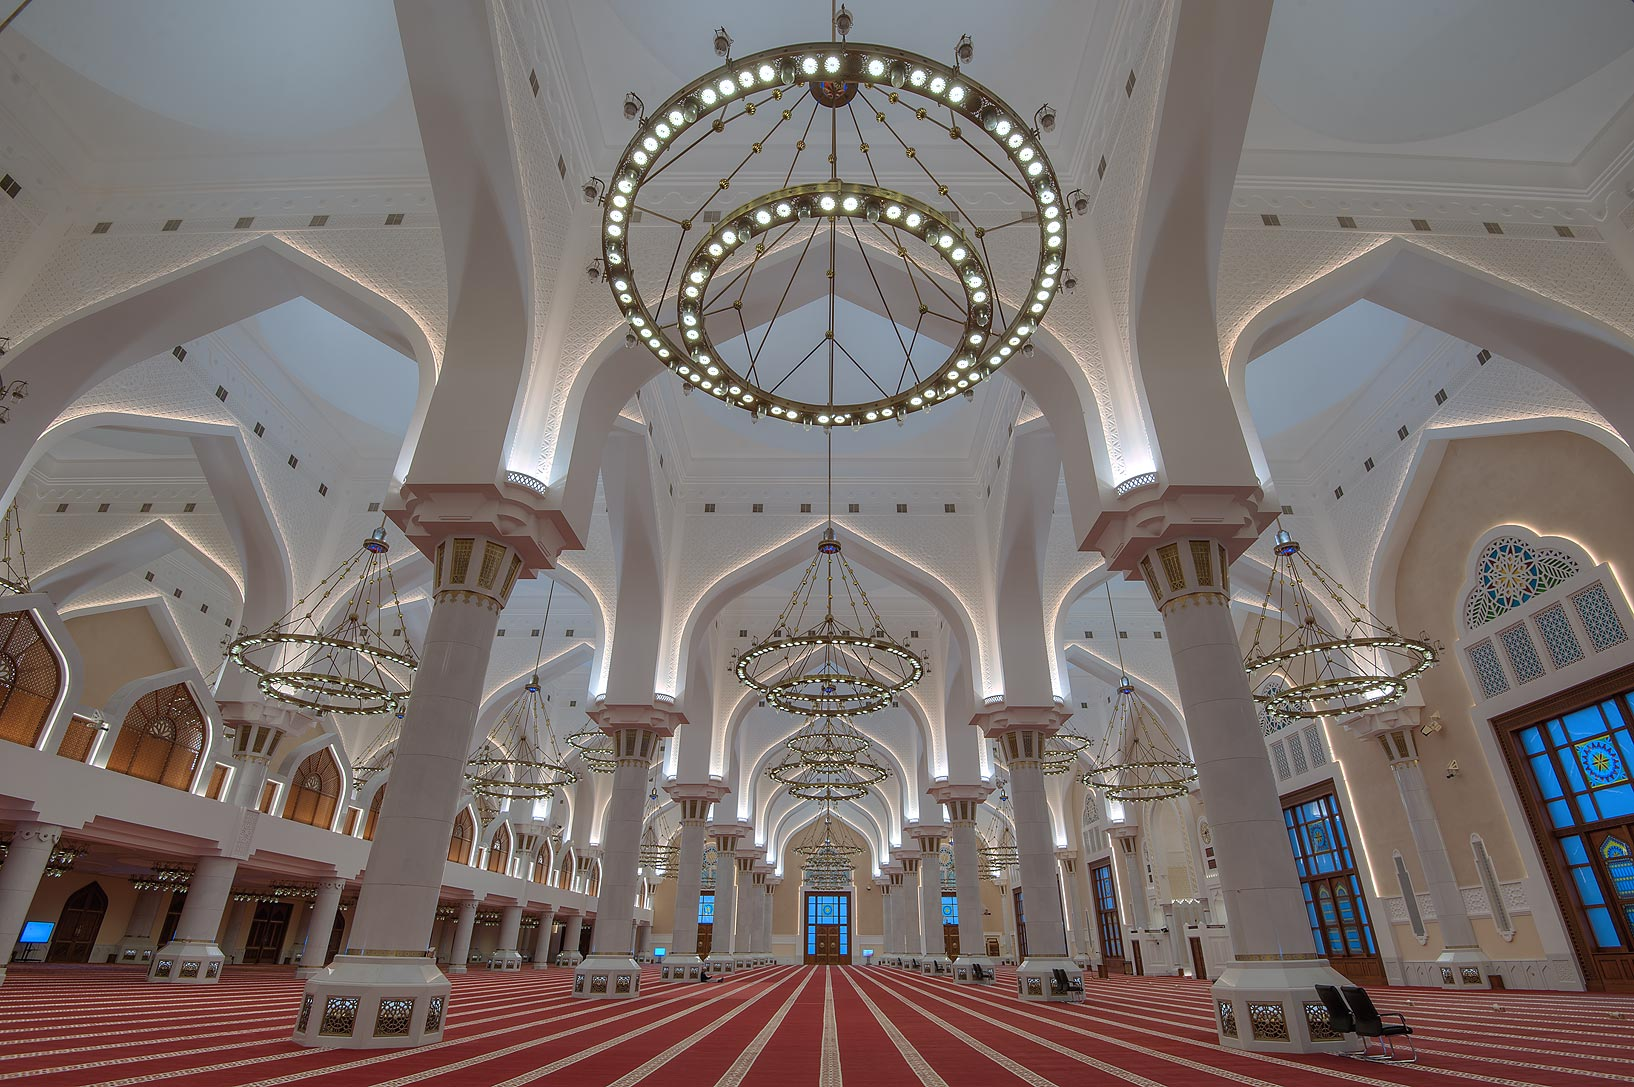 Vaults of prayer hall of State Mosque (Sheikh...Wahhab Mosque) at morning. Doha, Qatar